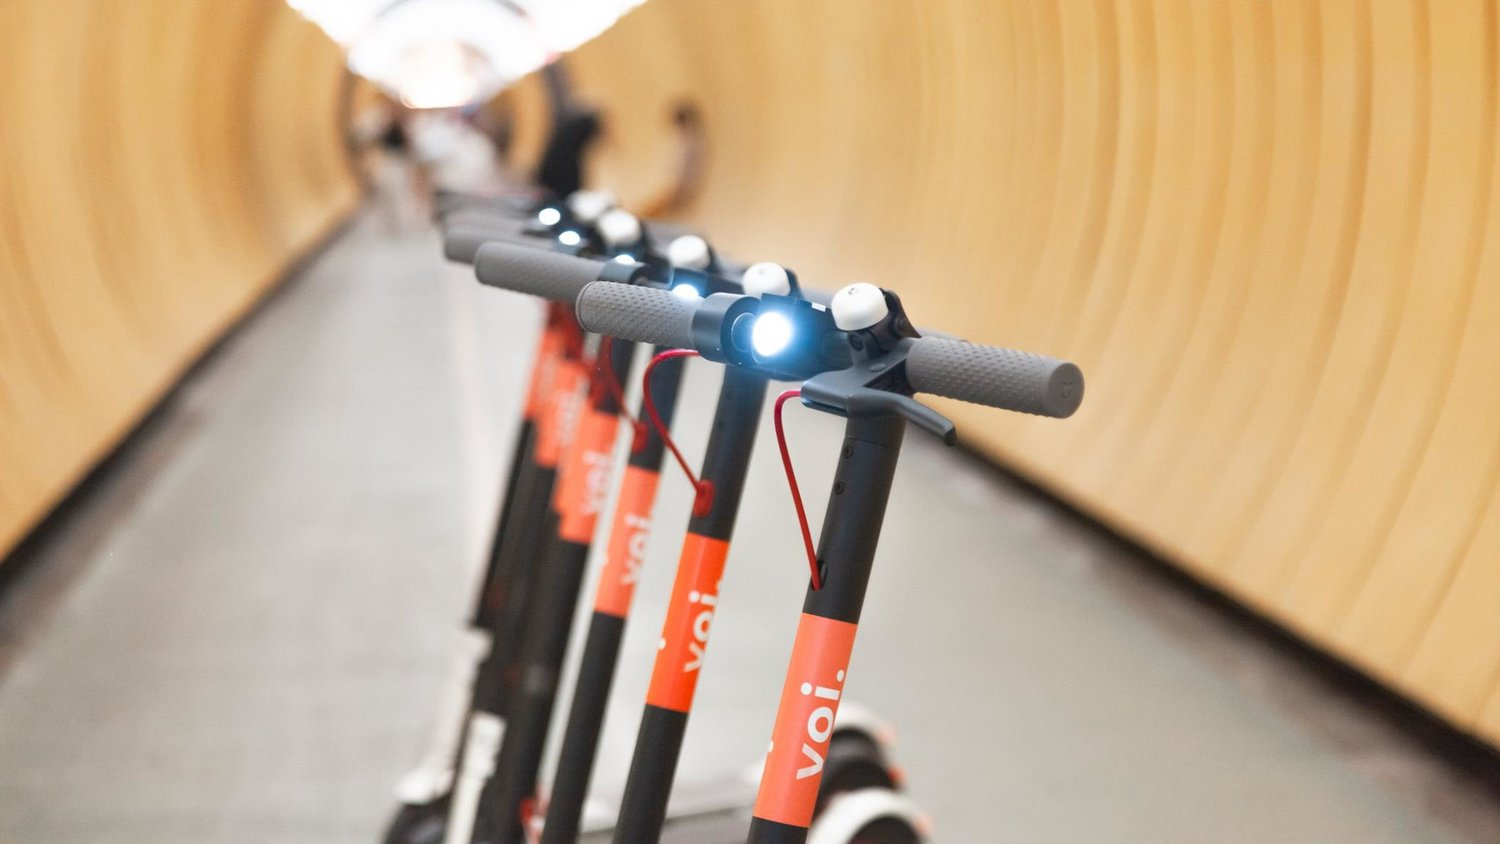 E-scooters, startup, VOI, has raised $50 million in a series A funding round led by London-based Balderton Capital, LocalGlobe, Raine Ventures, Vostok New Ventures, angel investors, Cristina Stenbeck, Jeff Wilkes (Amazon), Justin Mateen (co-founder of Tinder), Nicolas Brusson (CEO and co-founder of BlaBlaCar), Sebastian Knutsson (co-founder of King), Spencer Rascoff (CEO of Zillow), and Keith Richman, reports Techcrunch, better last mile solutions, Bird, cities, citizens really affordable, dockless, easy to use, electricity, Ford Motor, lesser pollution, Lime, Lyft, MobileNews, NewsMobile, powered, San Francisco, scooter-sharing startup, scooters, spin